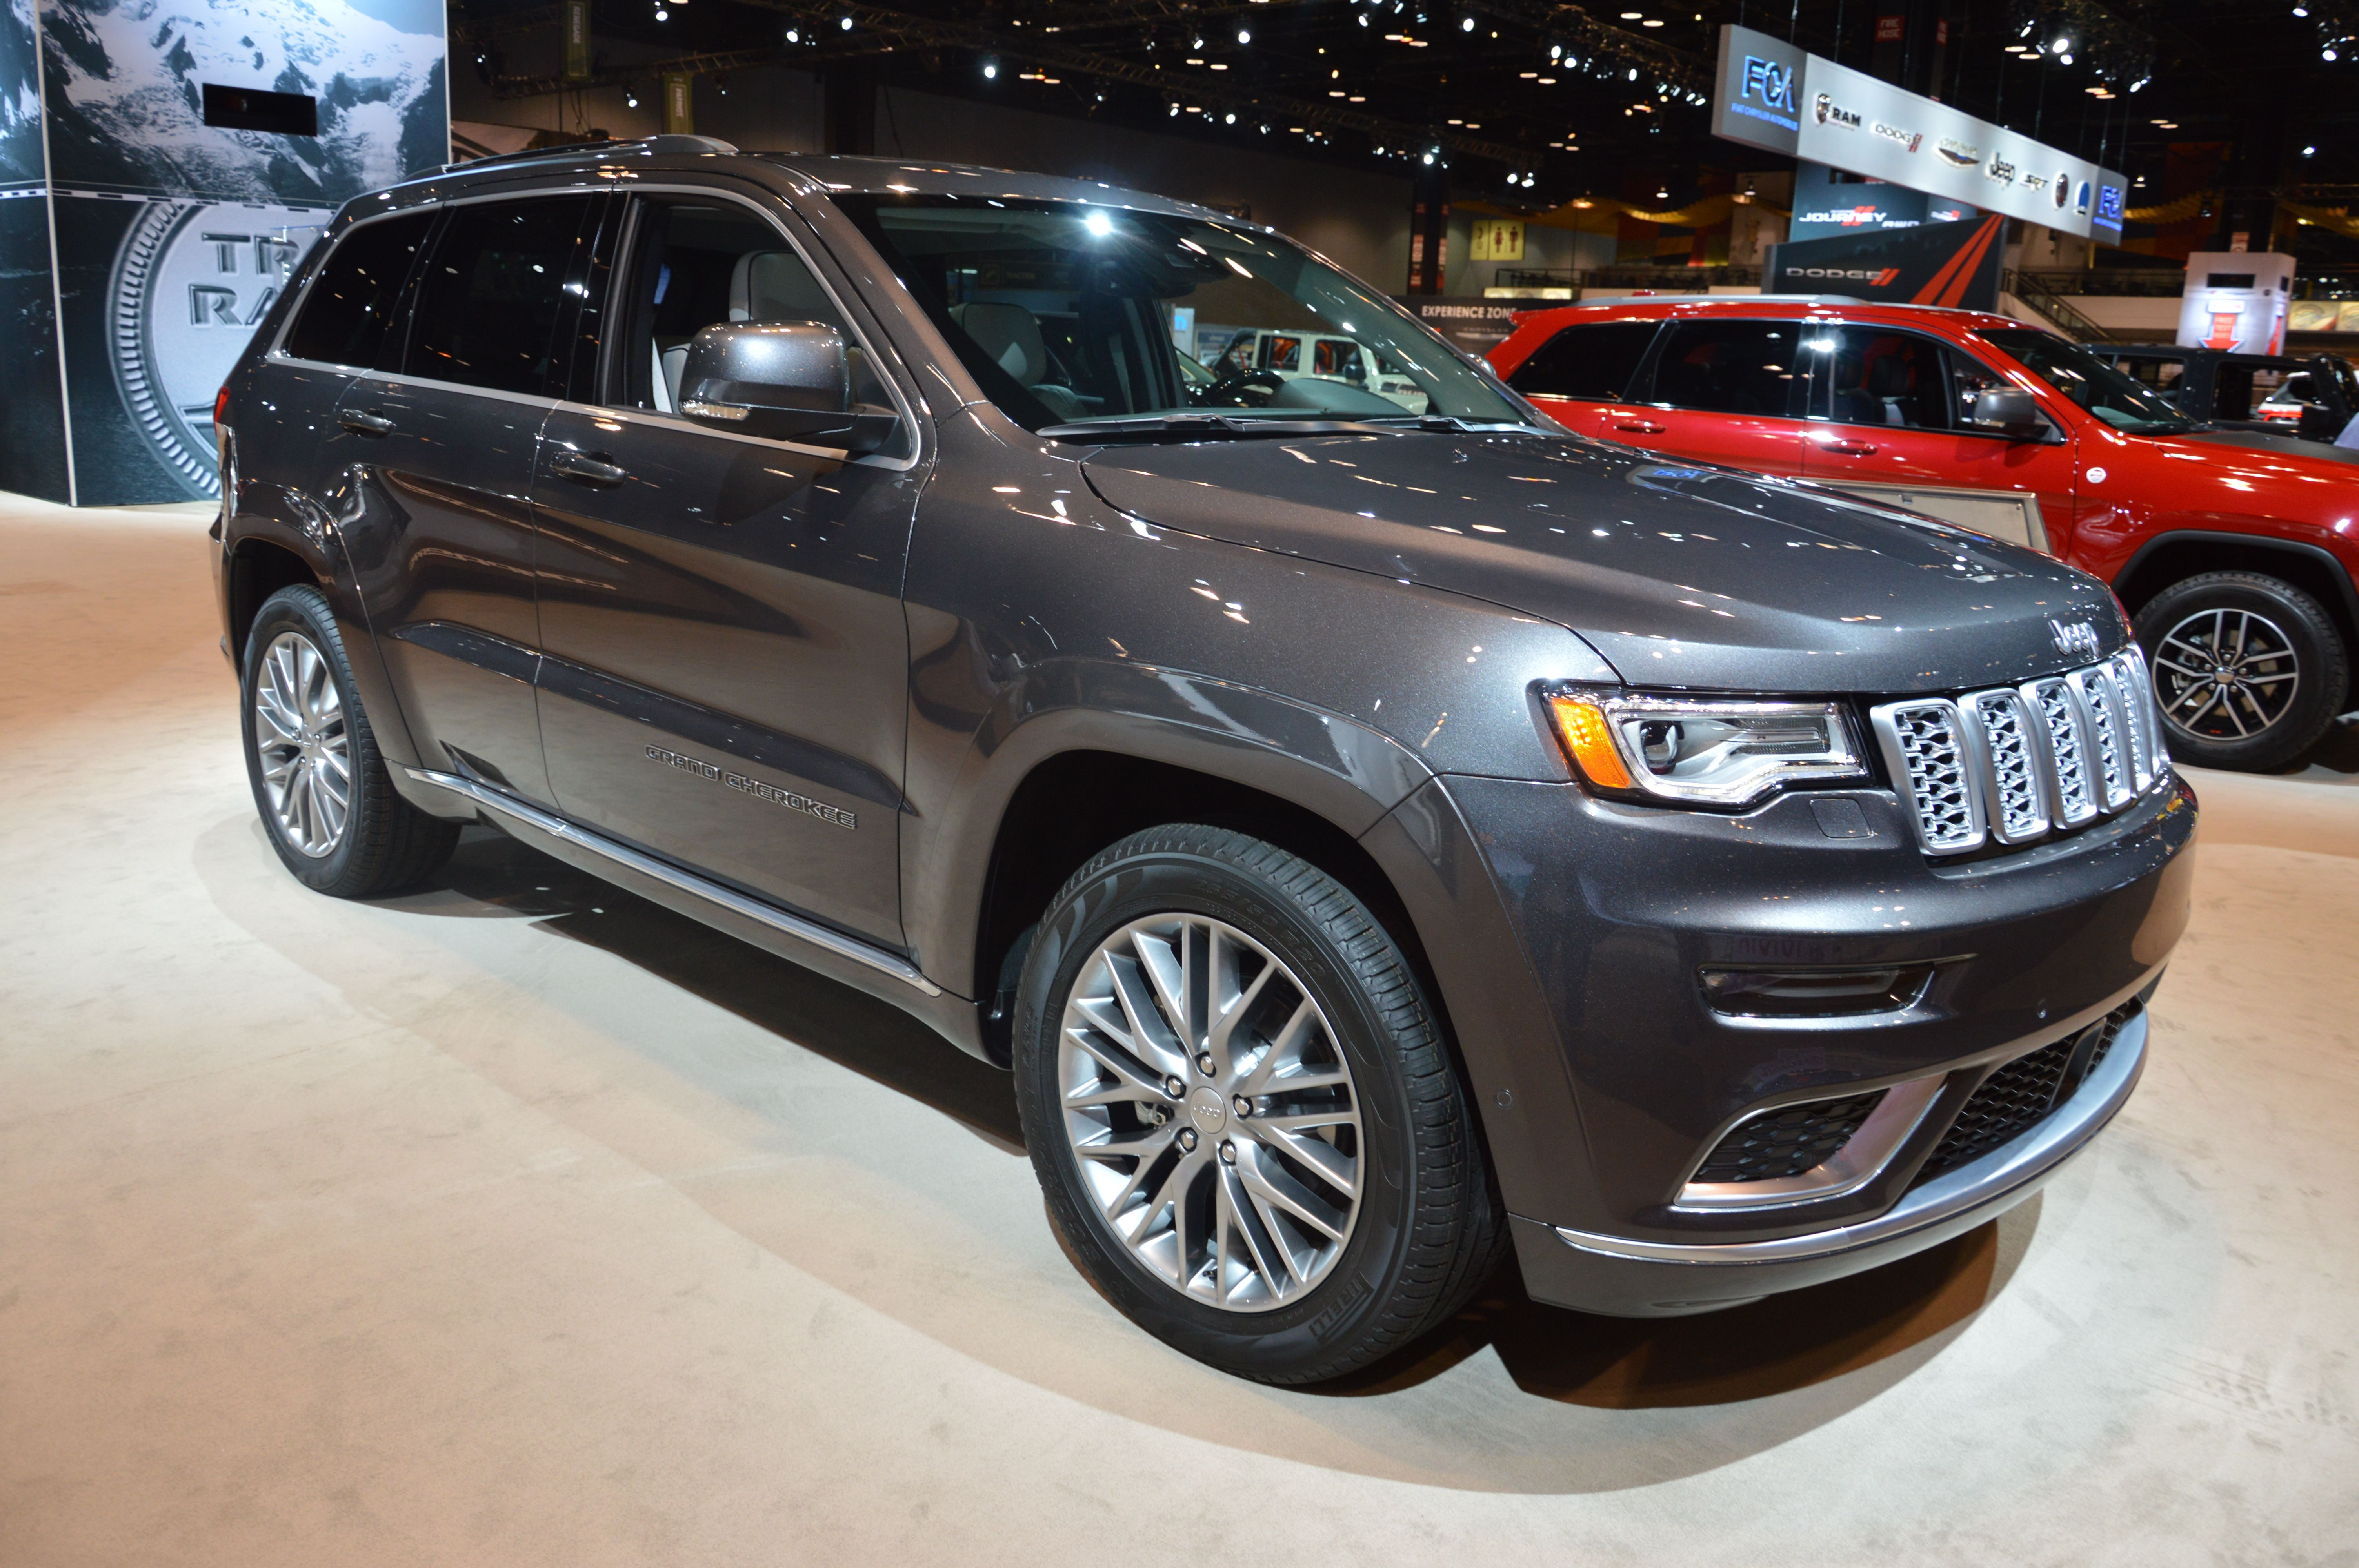 Fields Chrysler Jeep Dodge Ram Is Proud To Participate In The Chicago Auto  Show 2017.